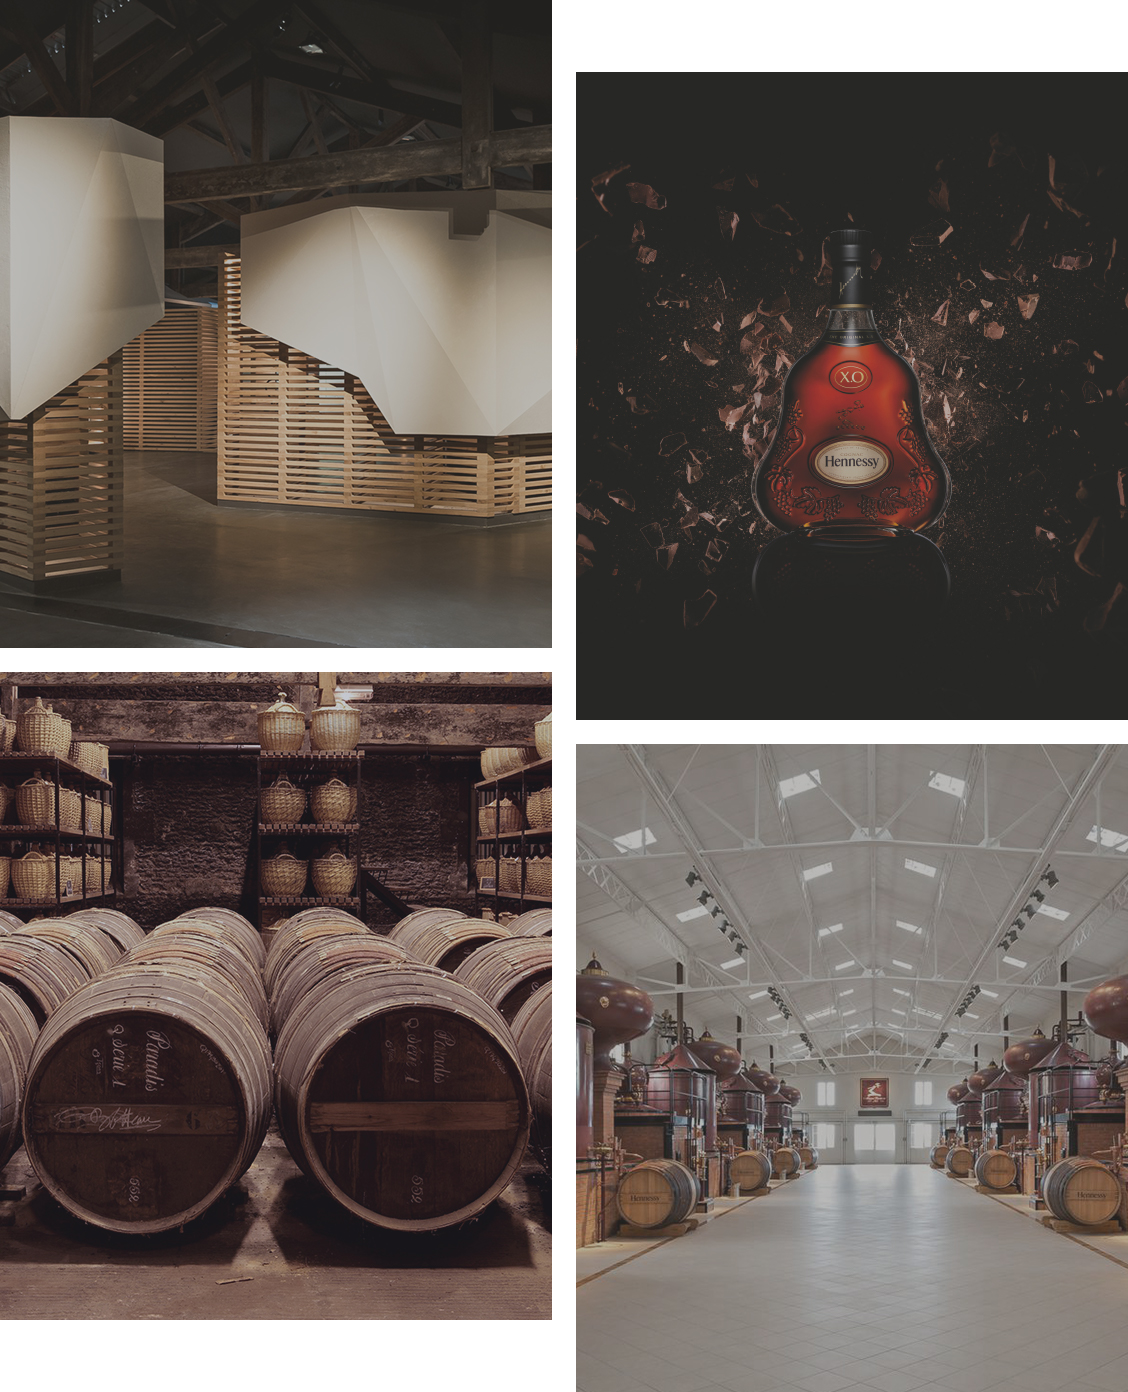 The tailored tours of Maison Hennessy in Cognac, wine tourism